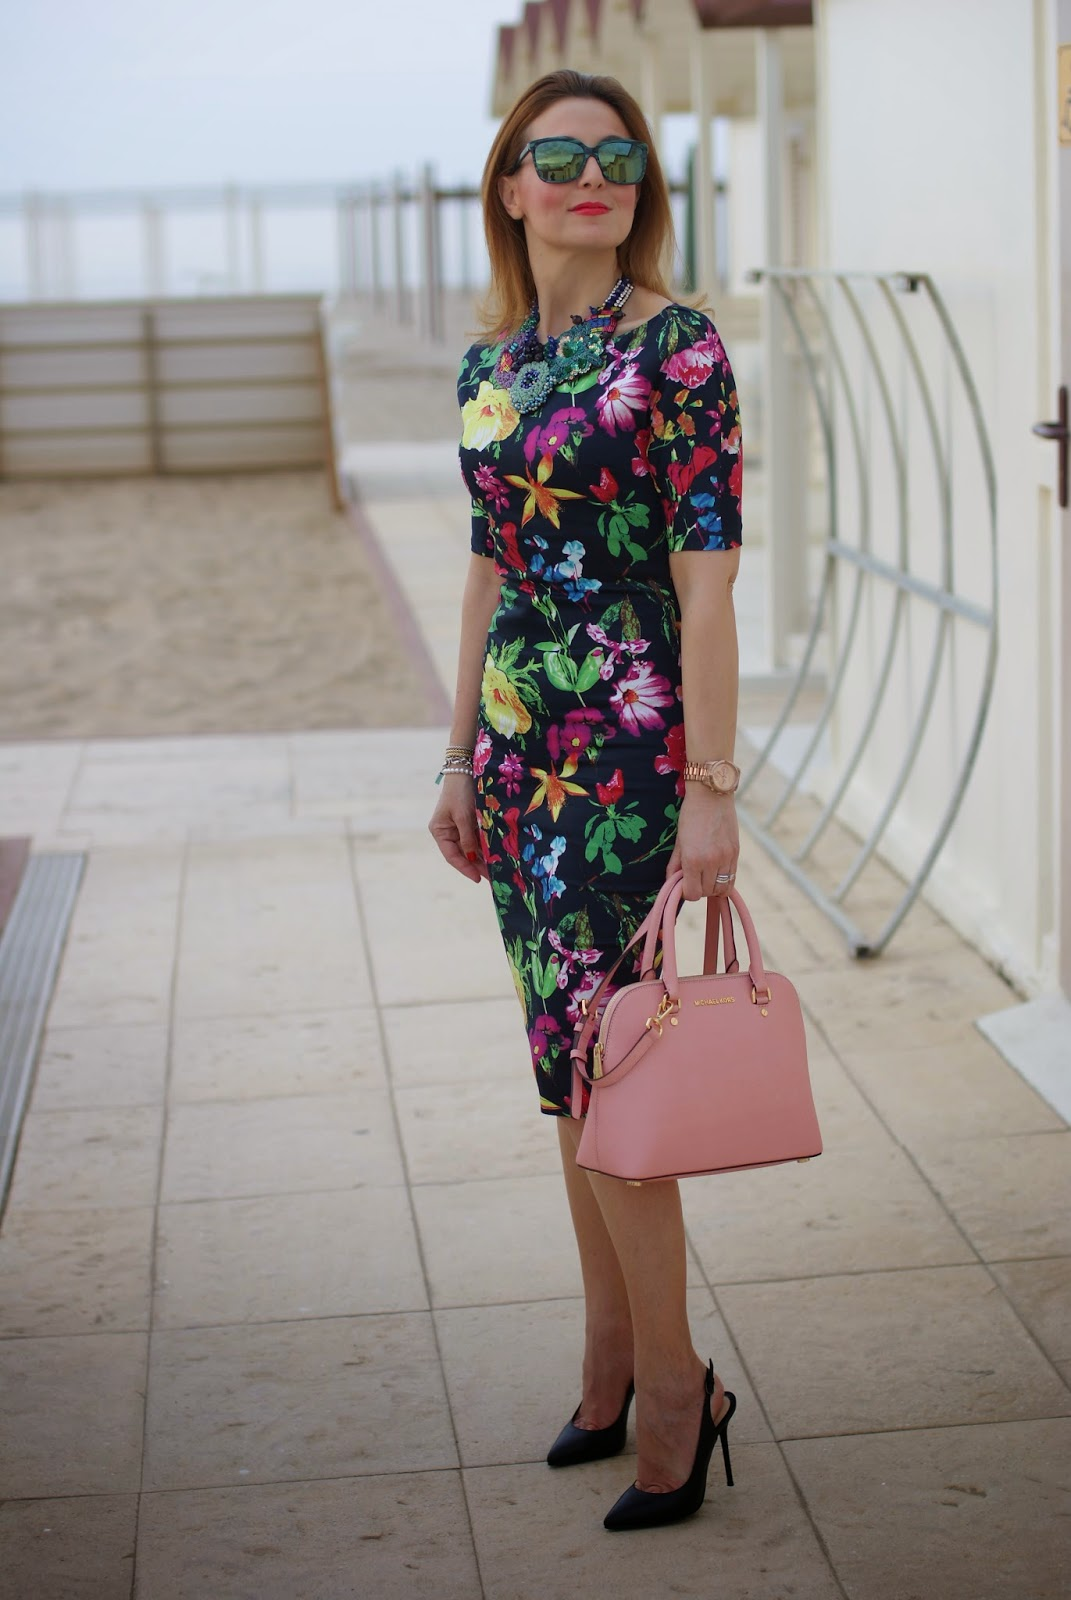 Ax Paris floral midi dress, floral bodycon dress with black stiletto slingbacks, Michael Kors Cindy pink bag, HypeGlass sunglasses on Fashion and Cookies fashion blog, fashion blogger style